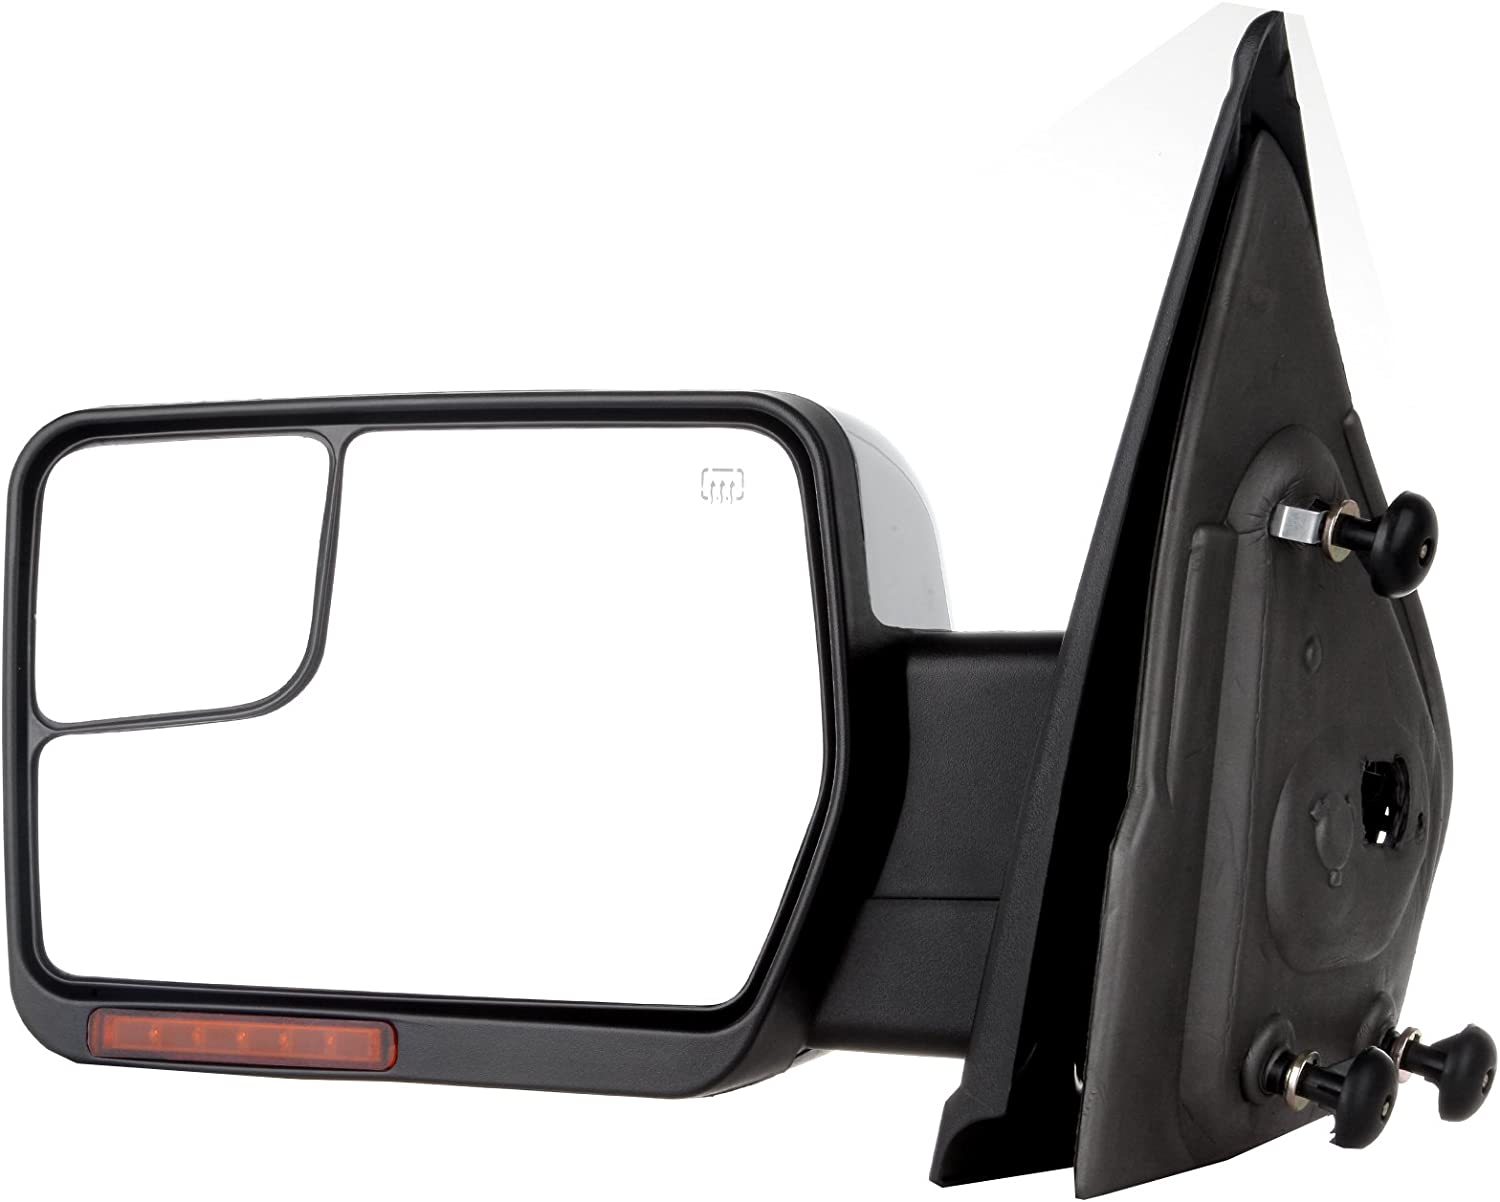 SCITOO Ford Towing Mirrors Right Passenger Side Rear View Mirrors fit 2007-2014 Ford F-150 with Power Control Heated Manual Telescoping Manual Folding Turn Signal Light and Puddle Light Feature